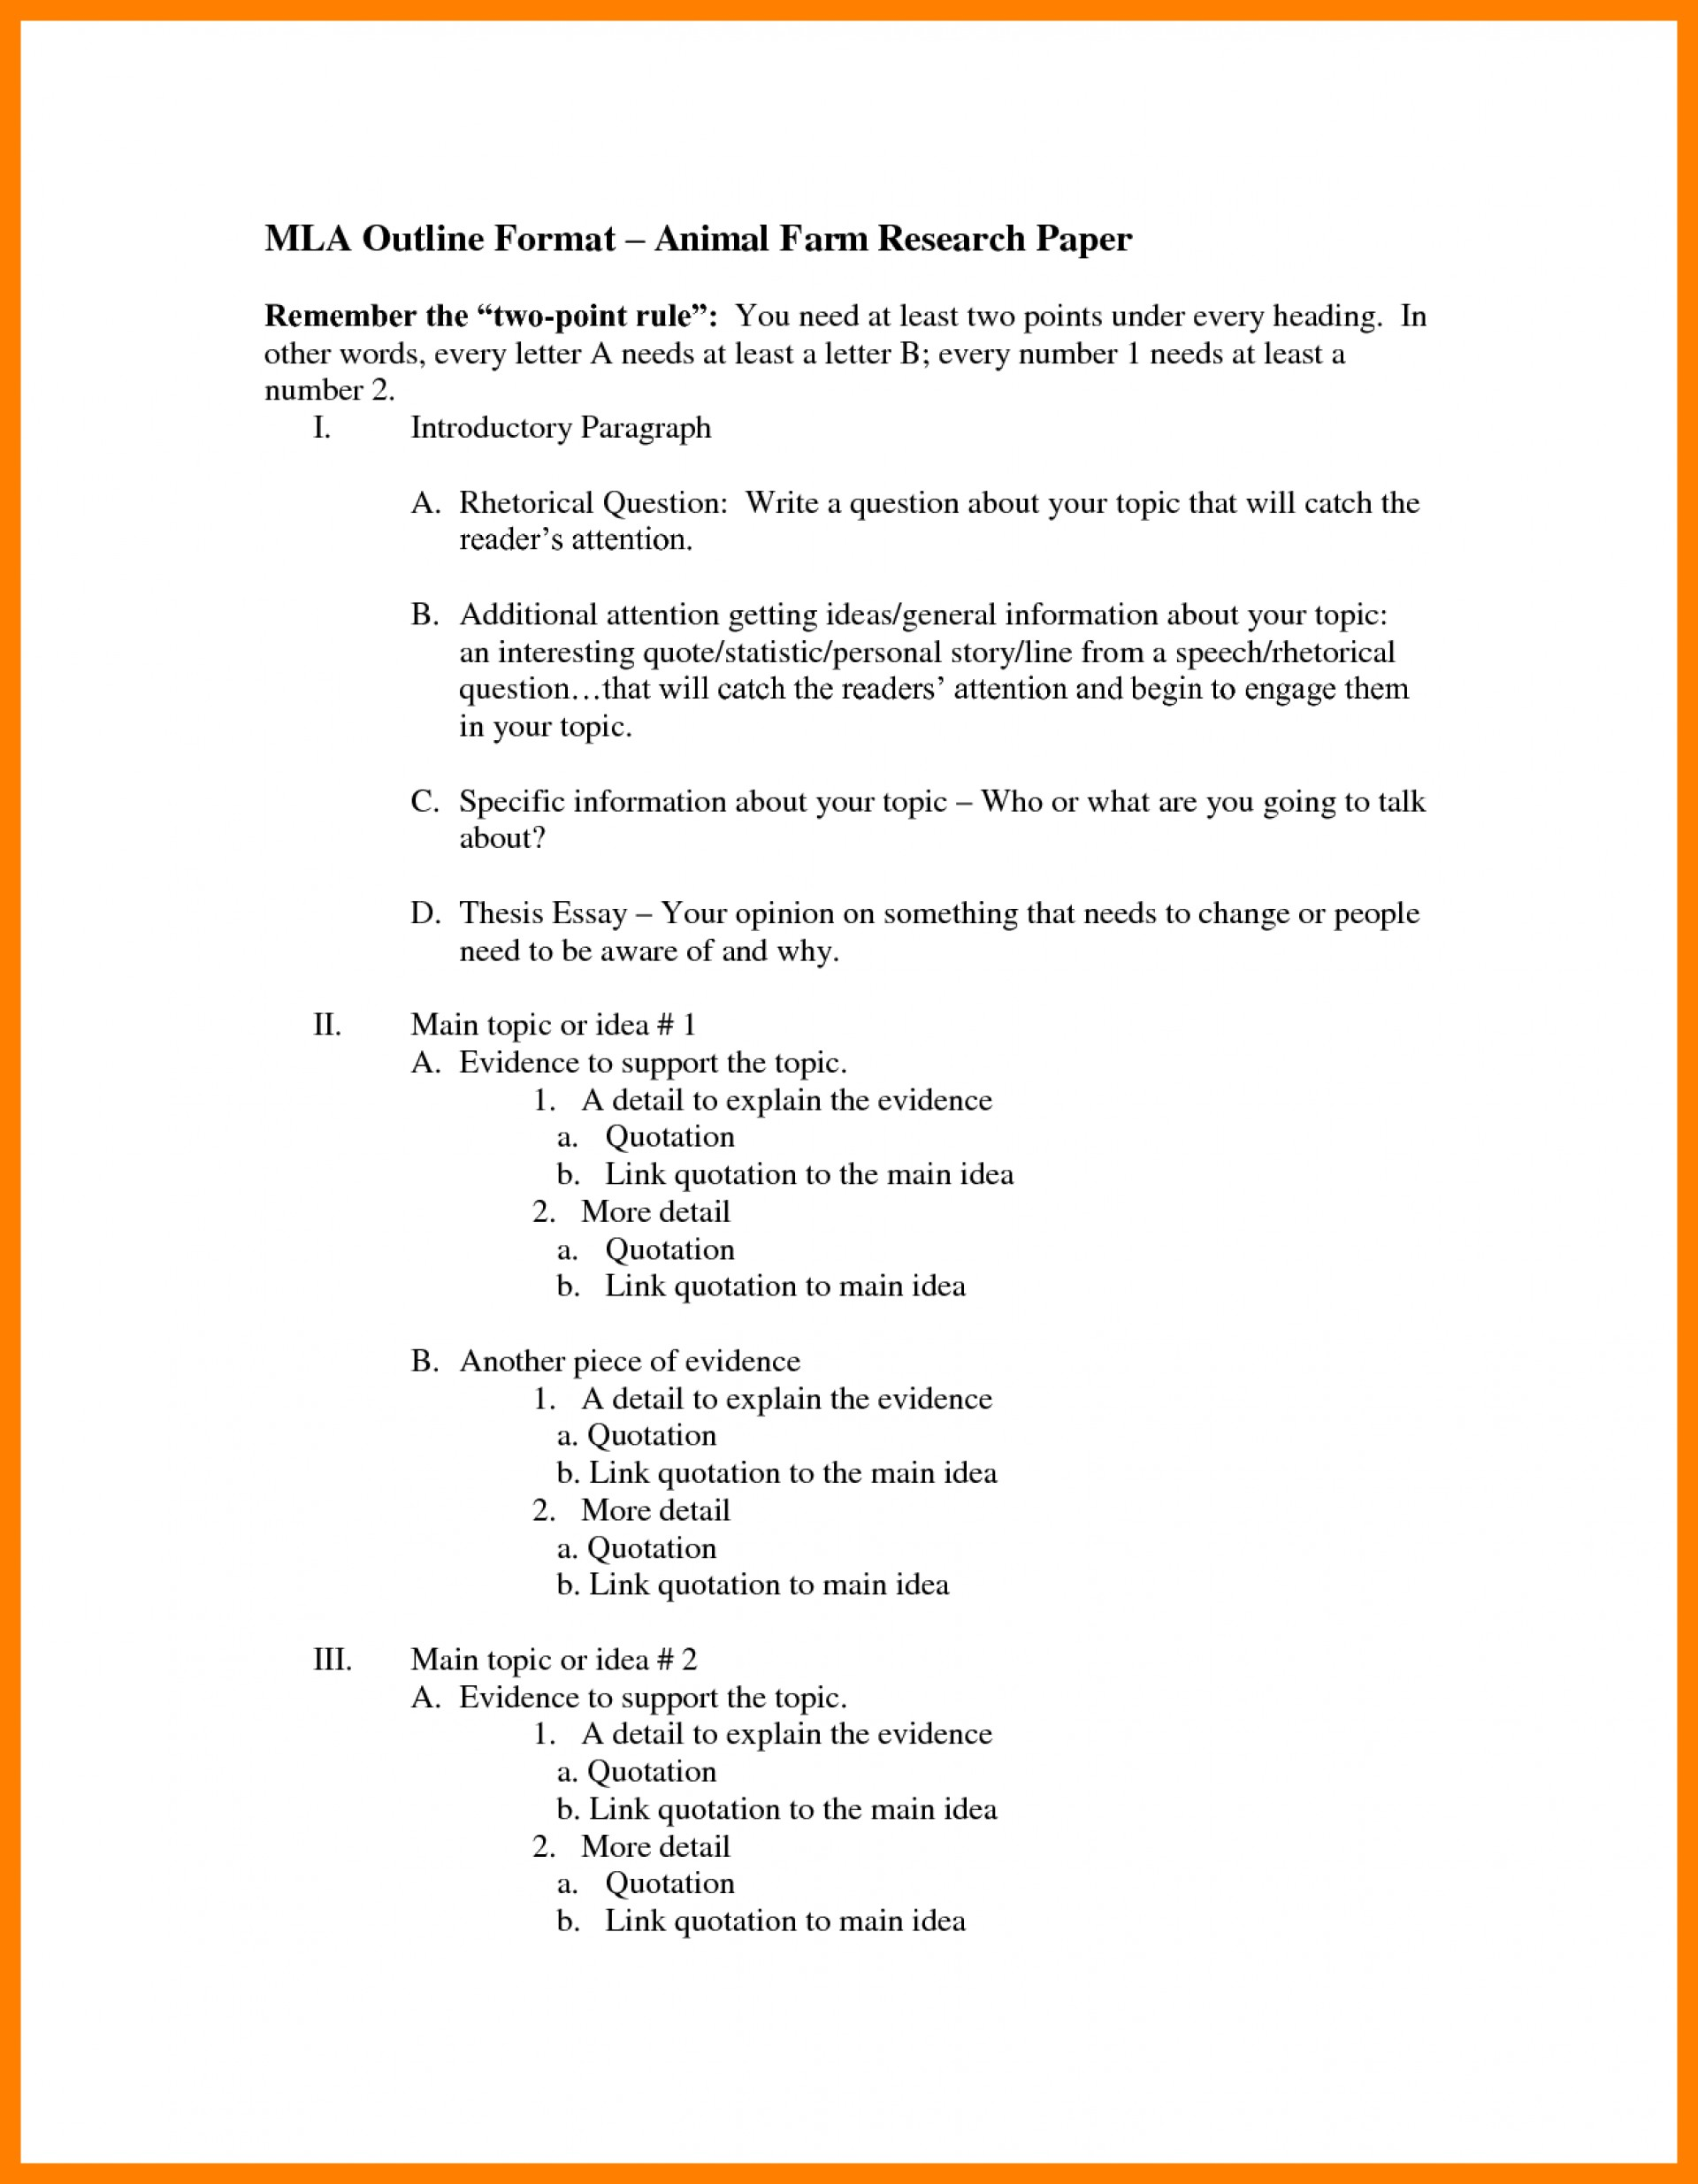 001 Research Paper Example Of Outline Mla Format Bunch Ideas Wonderful A 1920